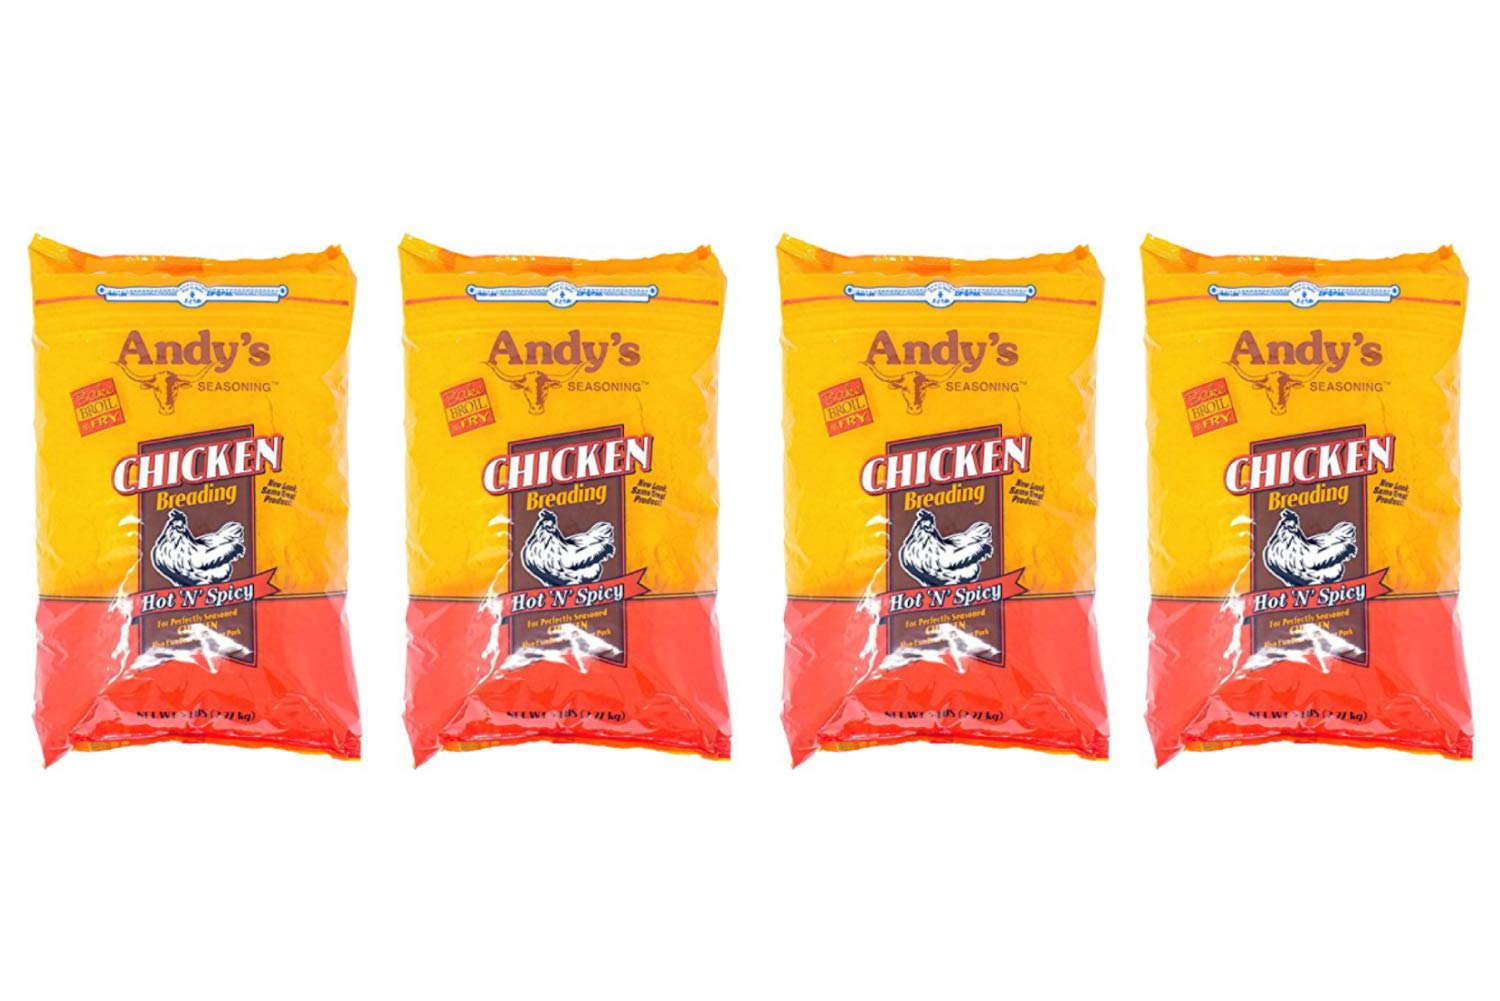 Andy's Seasoning Hot n Spicy Chicken Breading 80 Ounces Bag (4 Pack)